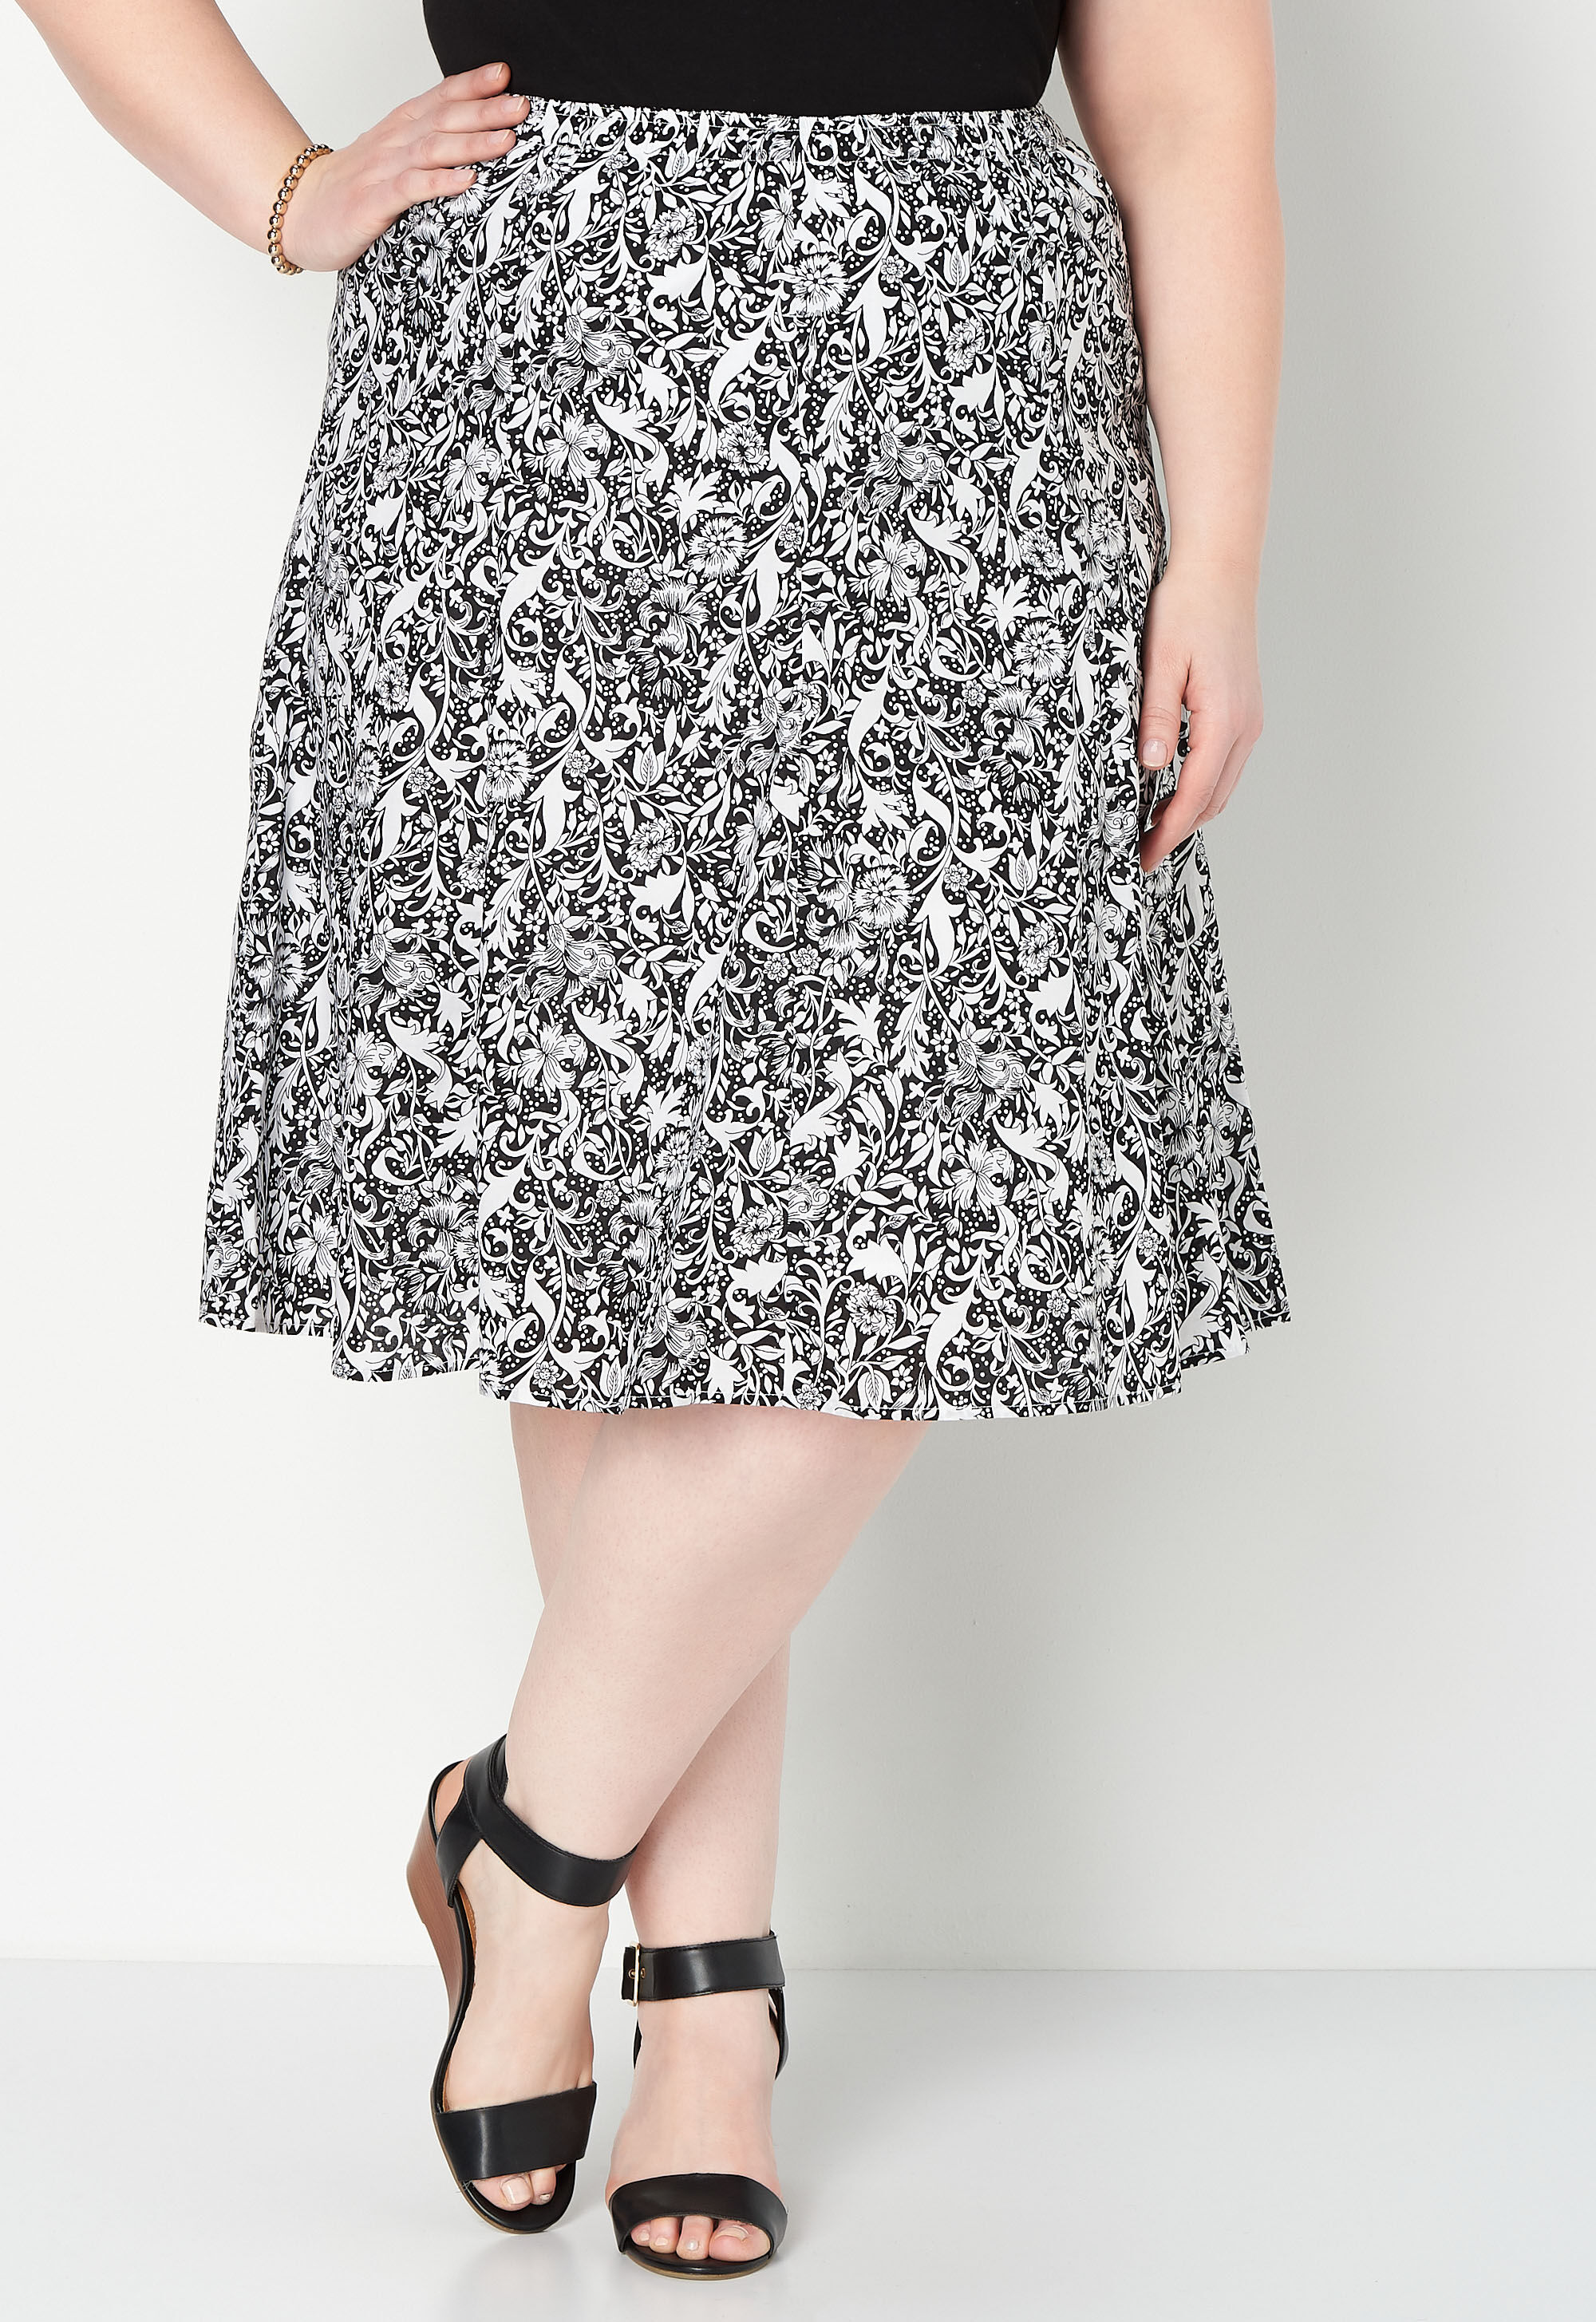 Black and White Floral Plus Size Skirt 6